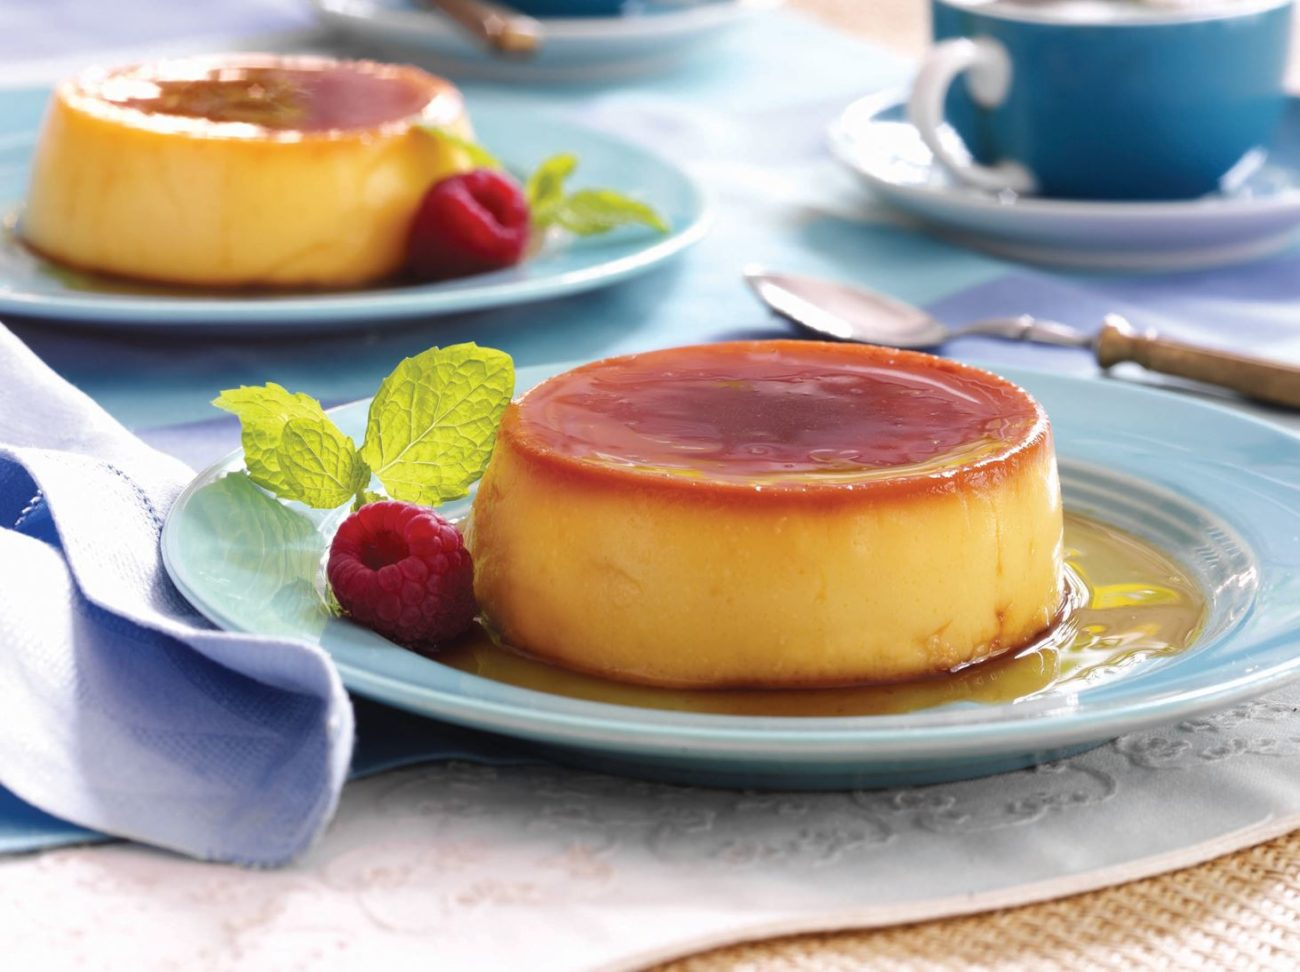 Flan or Custard Pudding